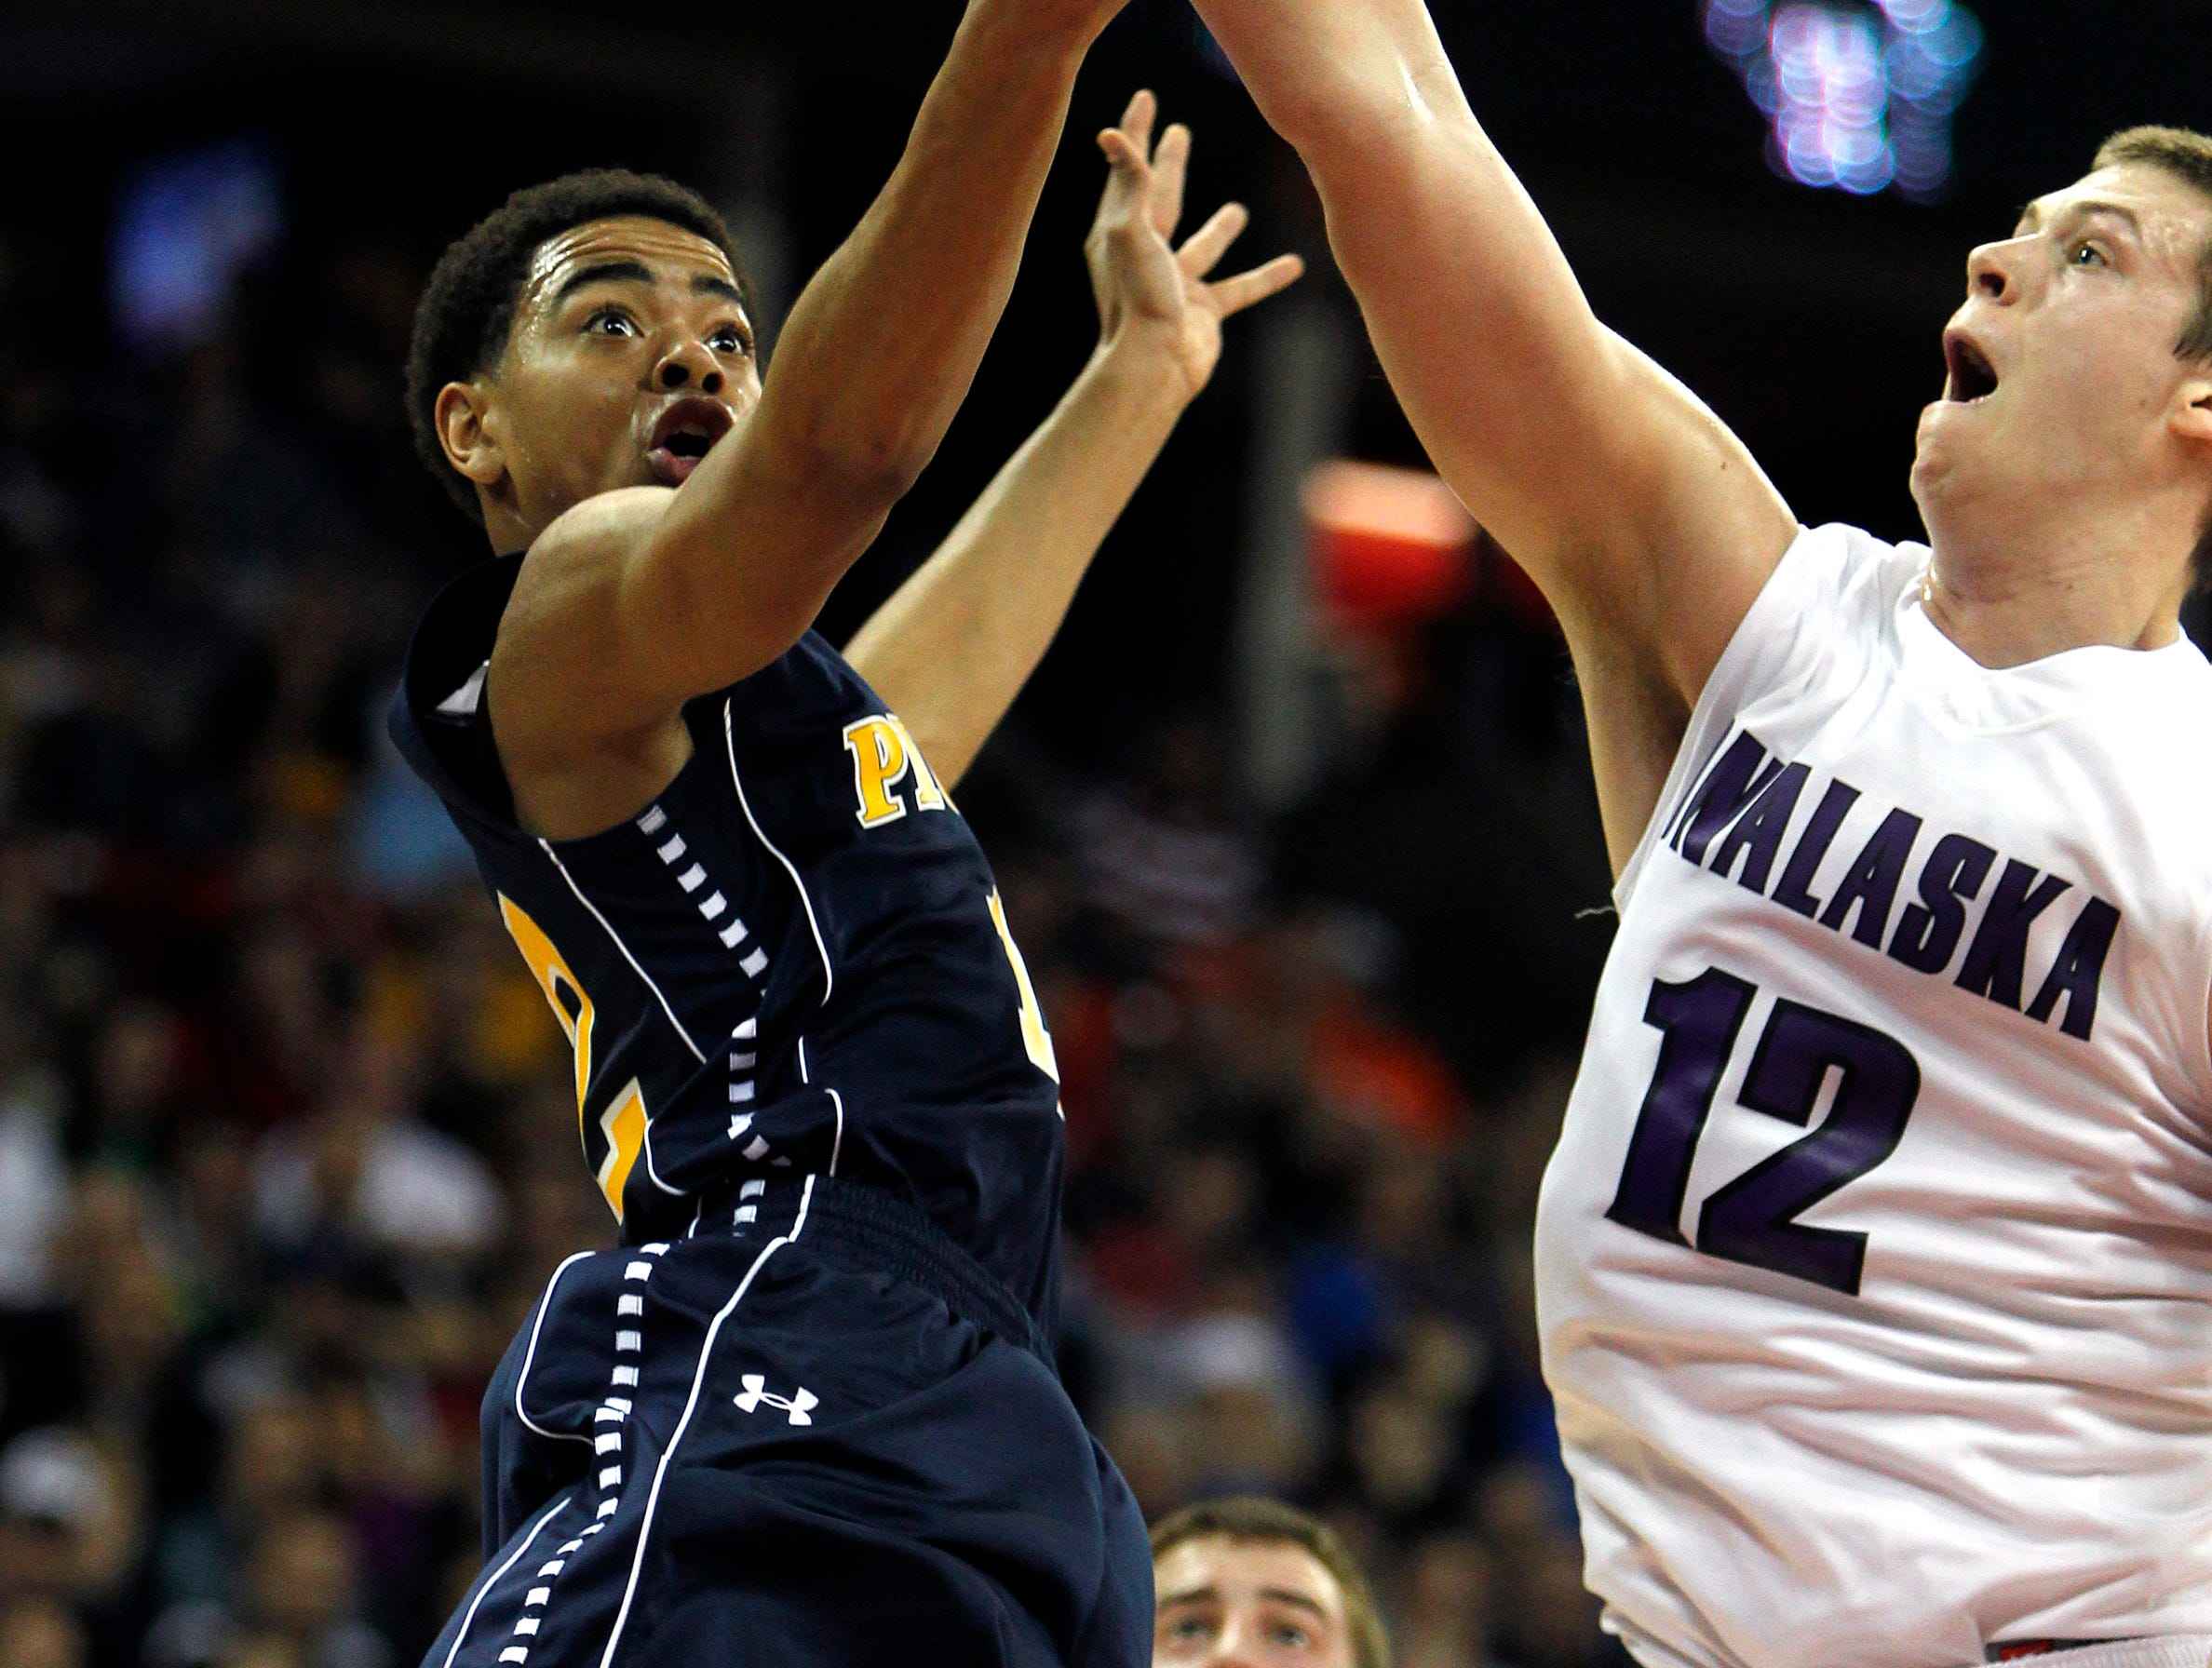 Milwaukee Pius XI's Carrington Love lays the ball up under the arm of Onalaska's Nick Arnez during the second quarter of the game at the WIAA boys state basketball tournament held at the Kohl Center in Madison, WI Friday March 16, 2012.